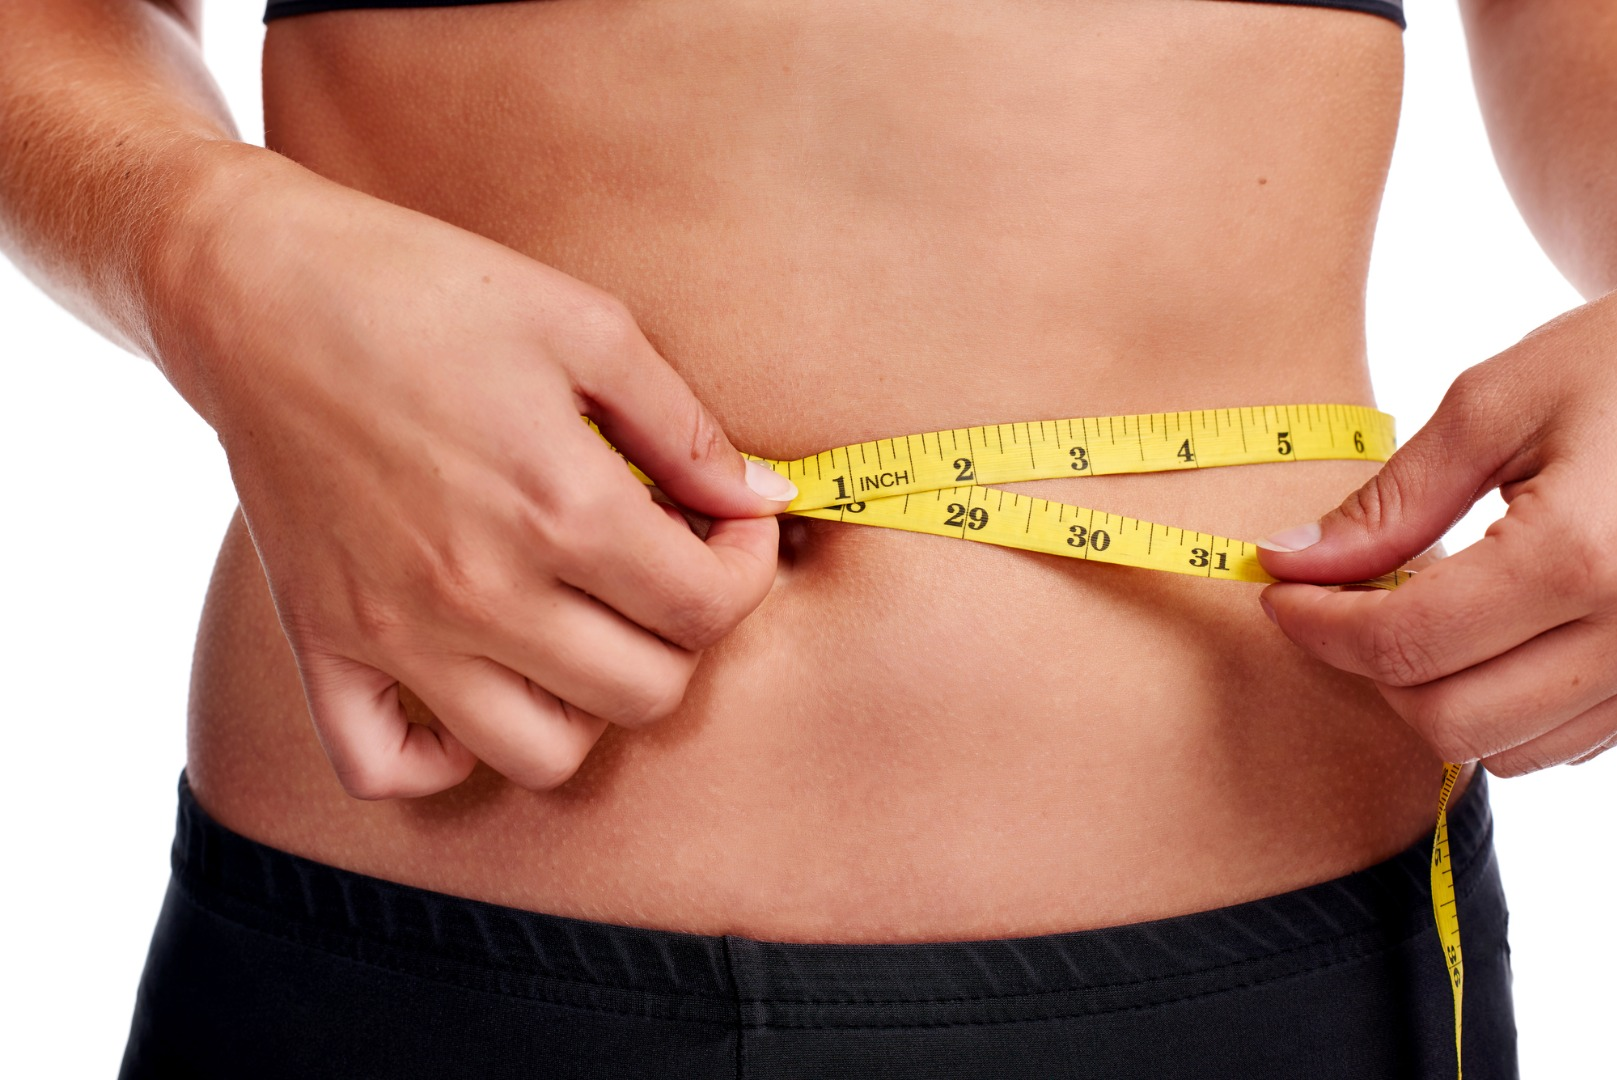 RFM better than BMI for measuring body fat